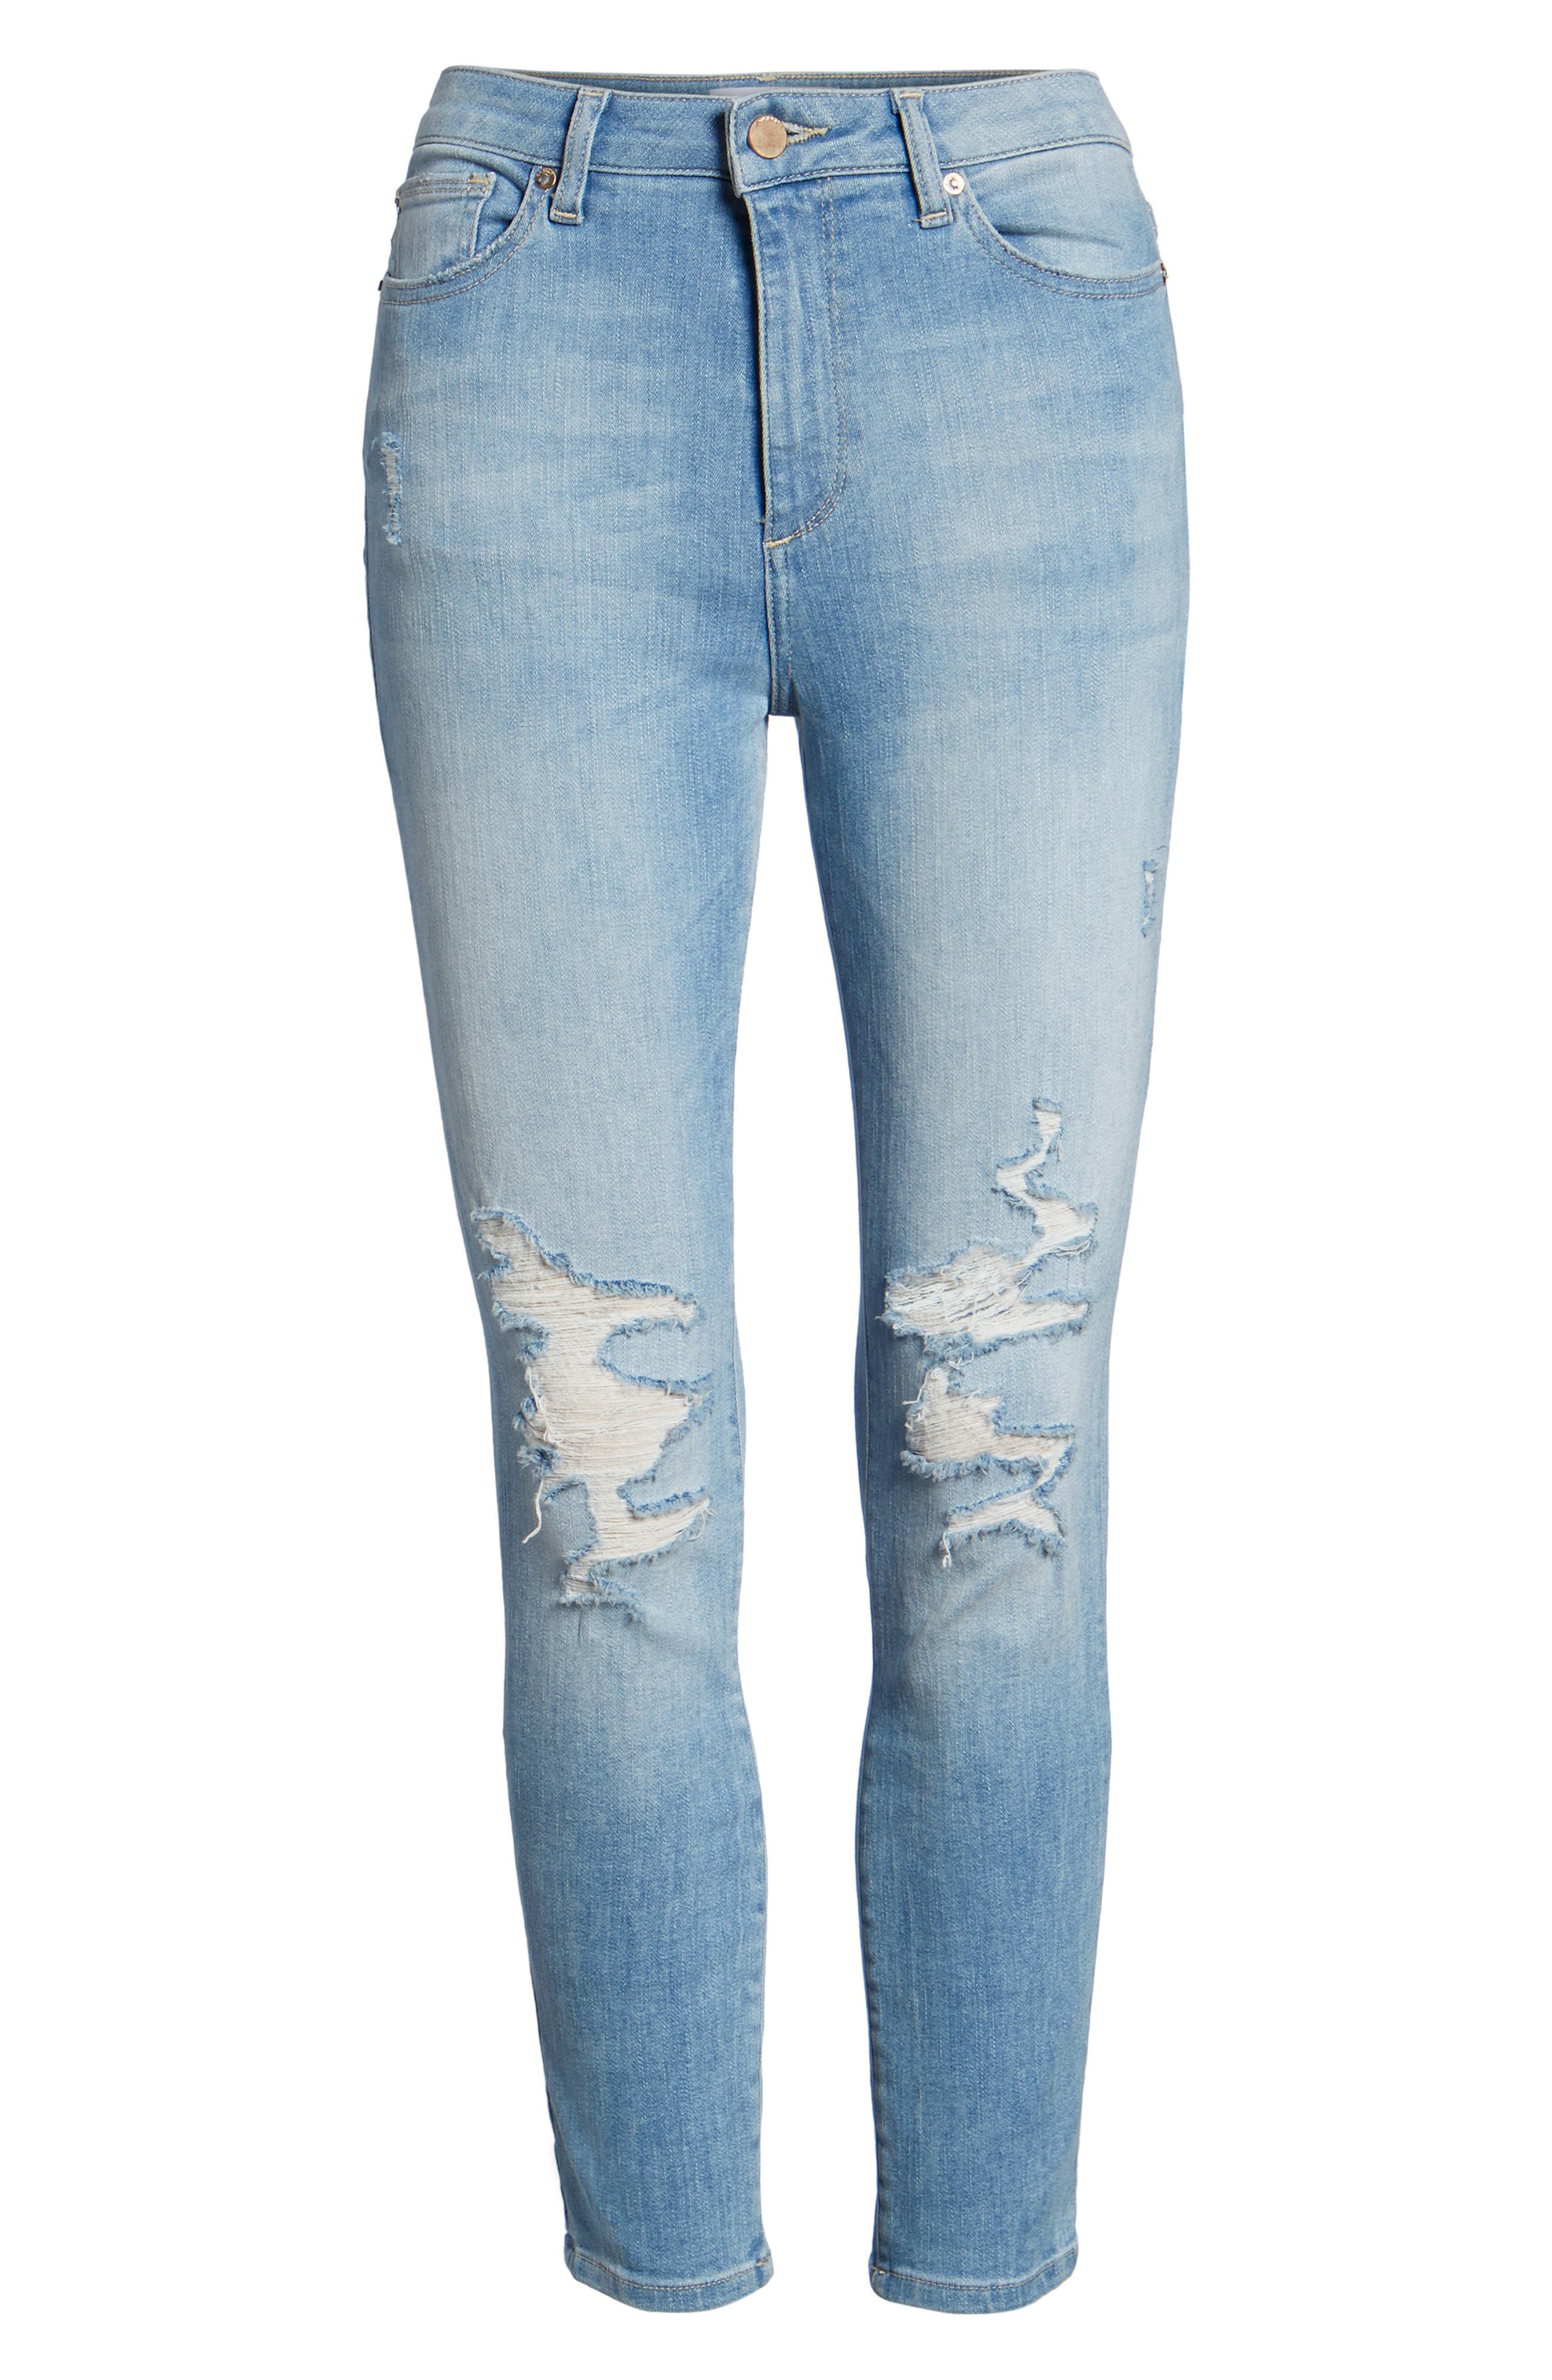 Chrissy Trimtone Ripped High Waist Skinny Jeans,                             Alternate thumbnail 7, color,                             430